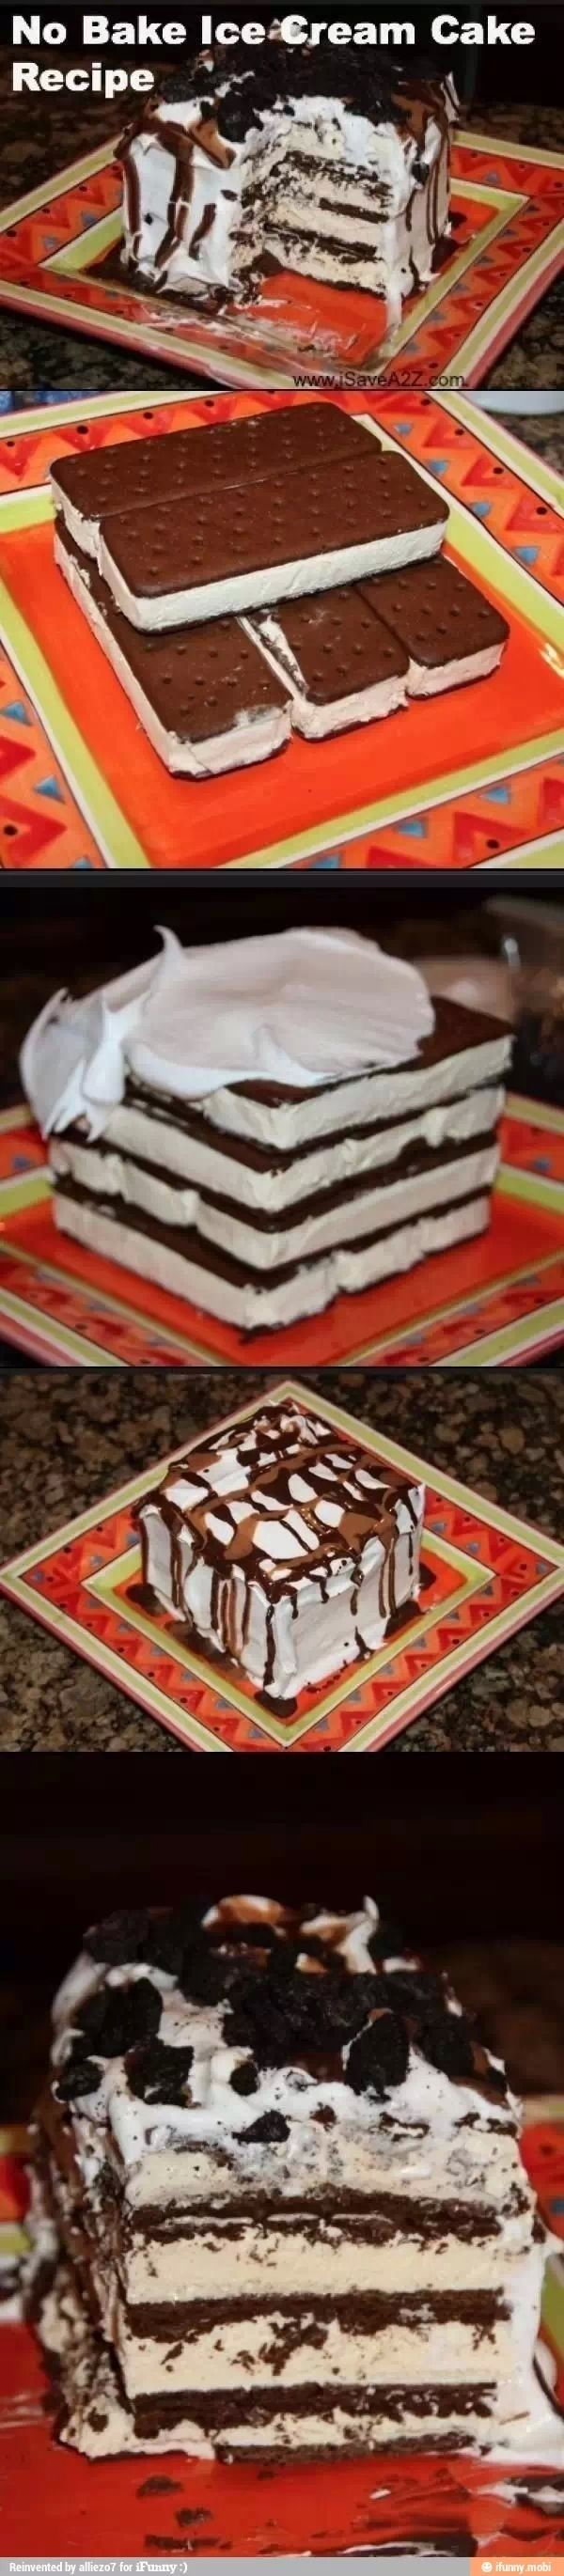 This just needs to happen! Ice cream sandwich cake!